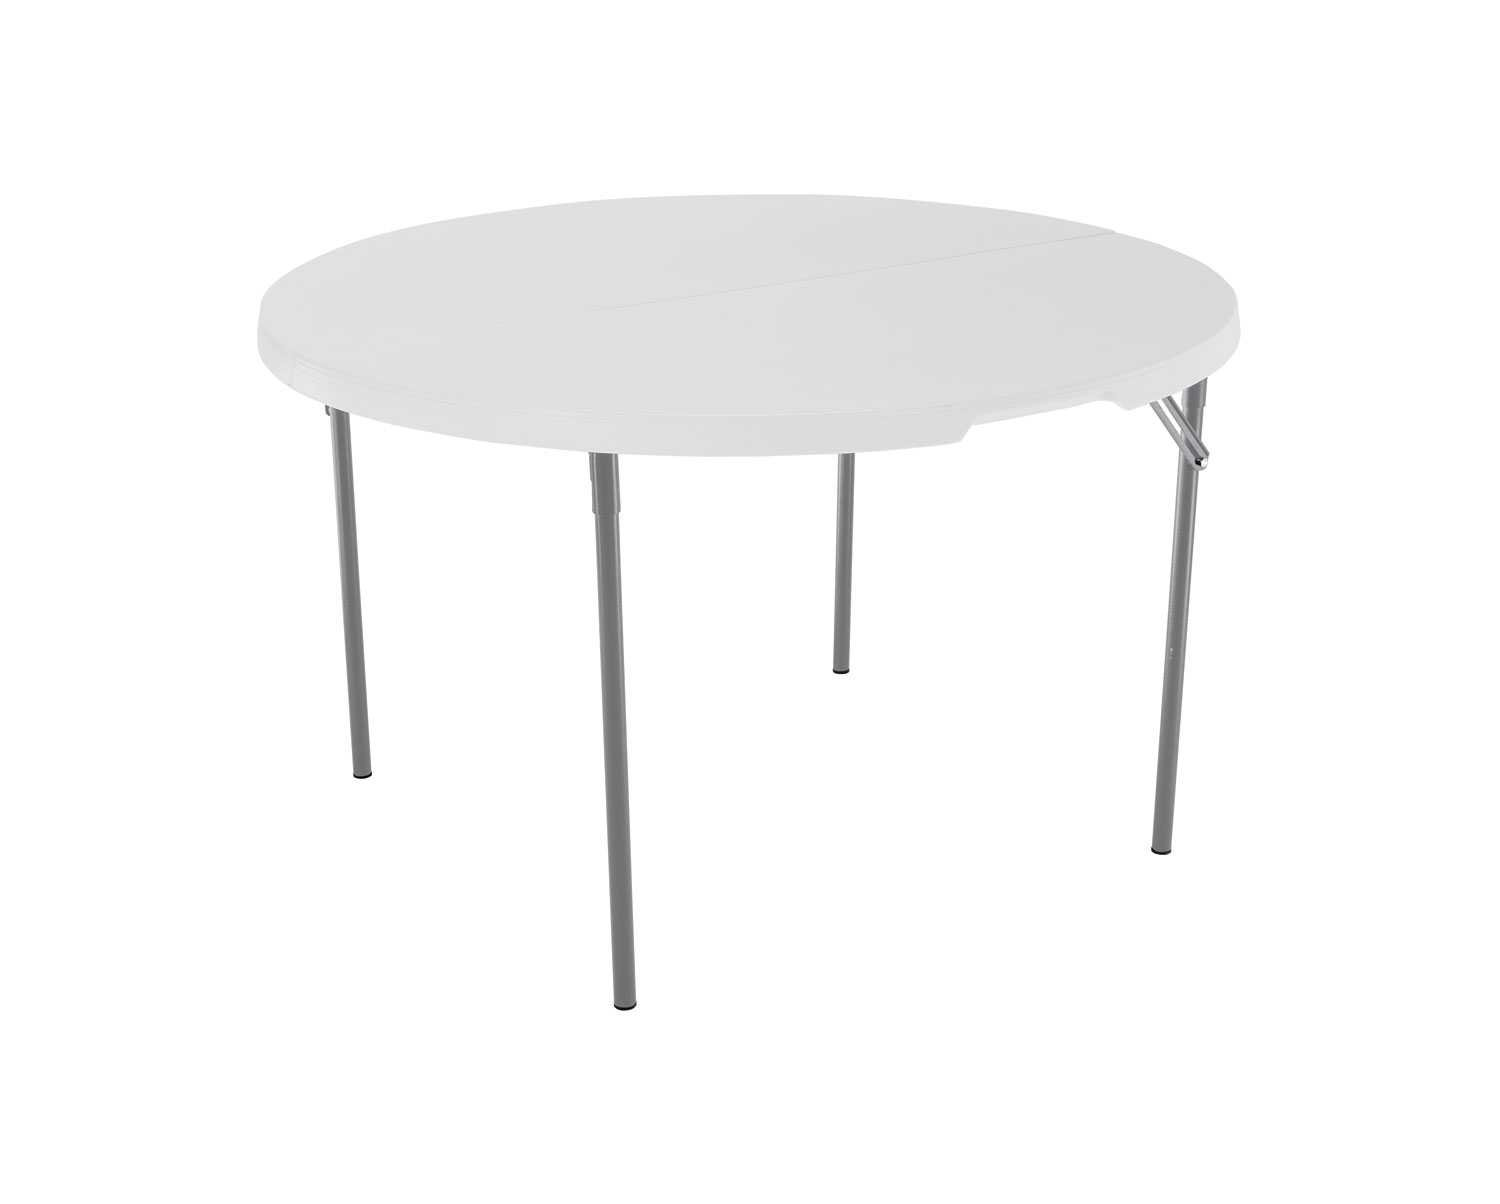 Lifetime 280064 Light Commercial Fold-In-Half Round Table, 4 Feet, White Granite Lifetime Products Inc.